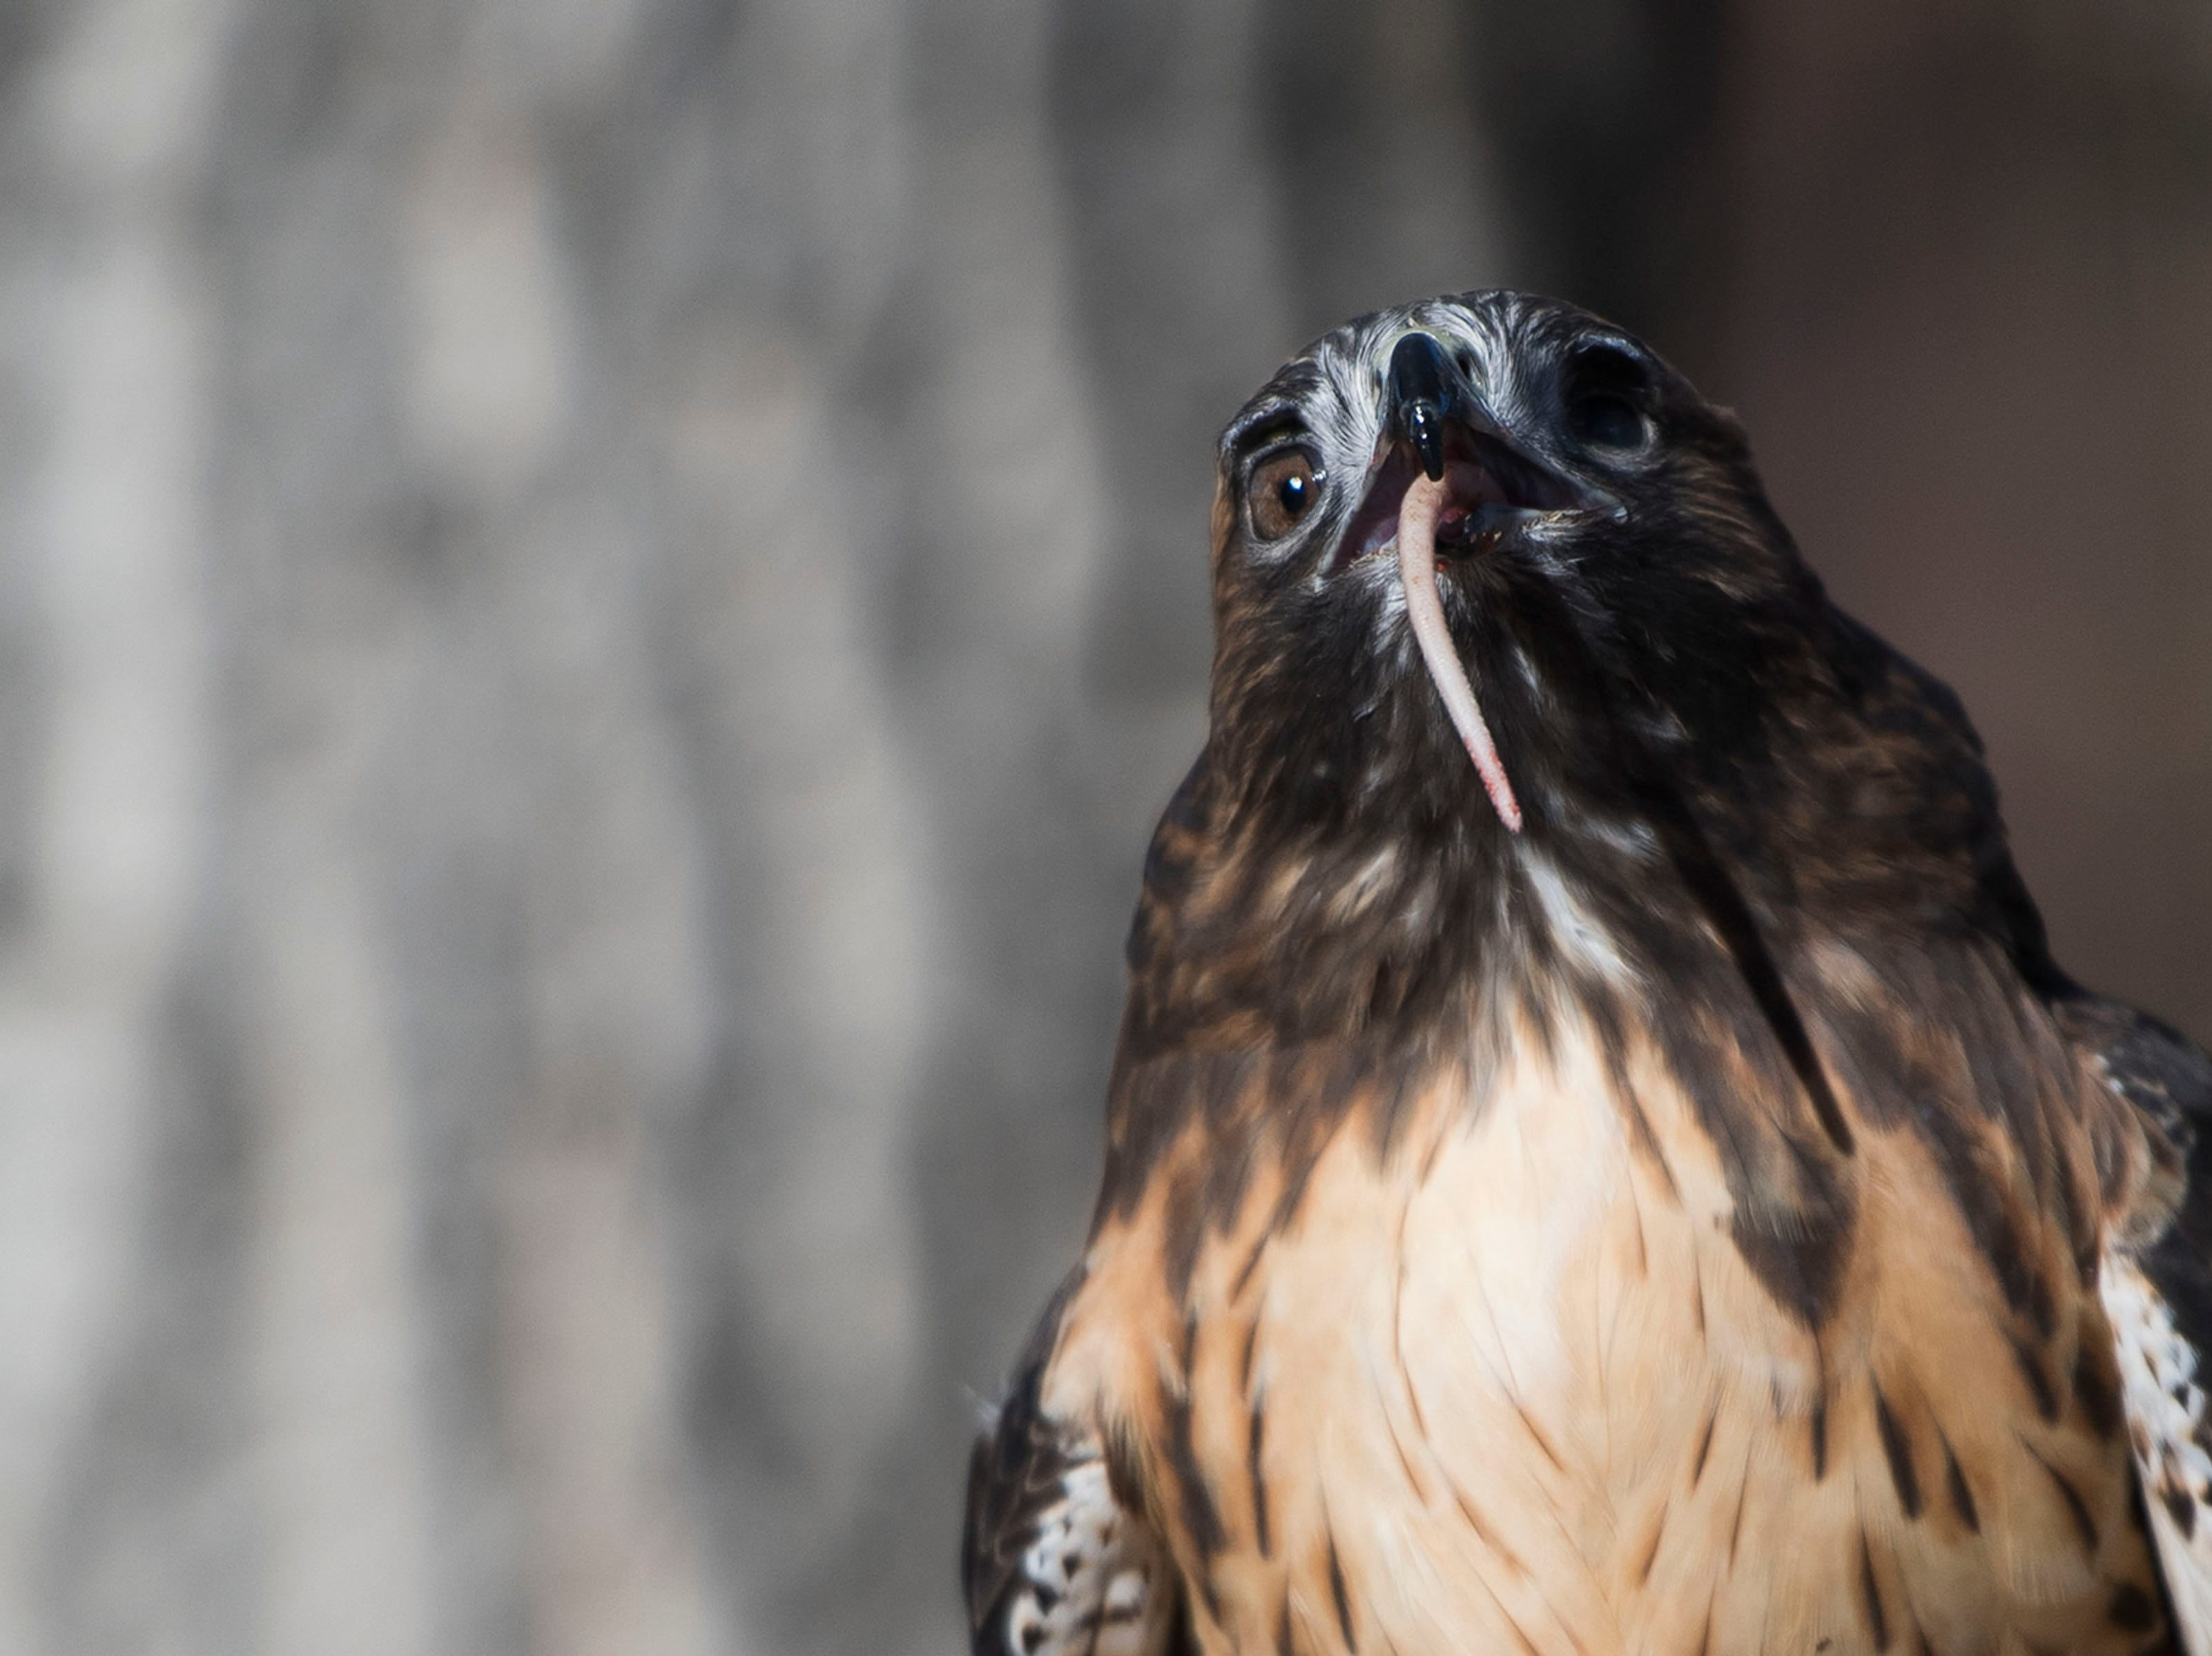 An educational red-tailed hawk consumes the tail of a rat while out of its cage on Friday, Feb. 1, 2019, at the Rocky Mountain Raptor Program in Fort Collins, Colo.